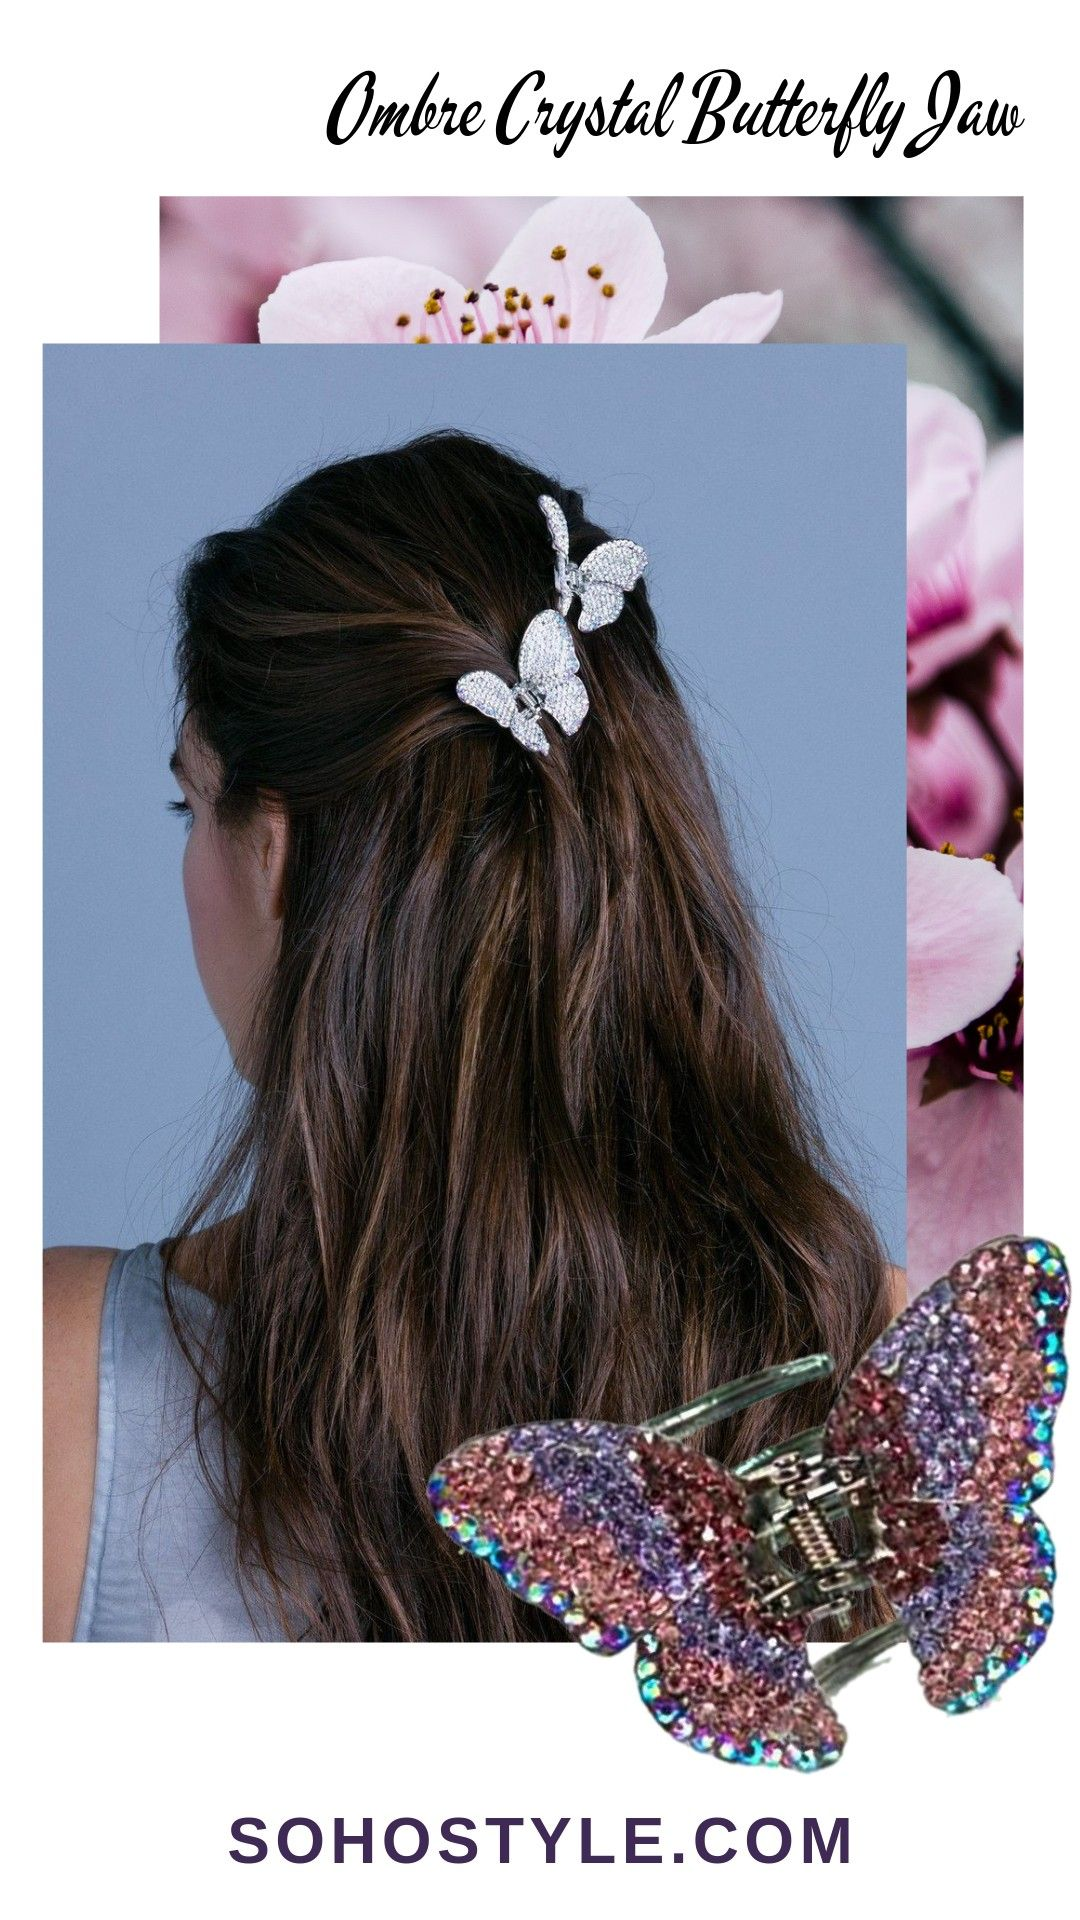 Spring Festival Coachella Hairstyle Ombre Crystal Butterfly Hair Jaw Luxury Hair Extensions Coachella Hair Ombre Crystal